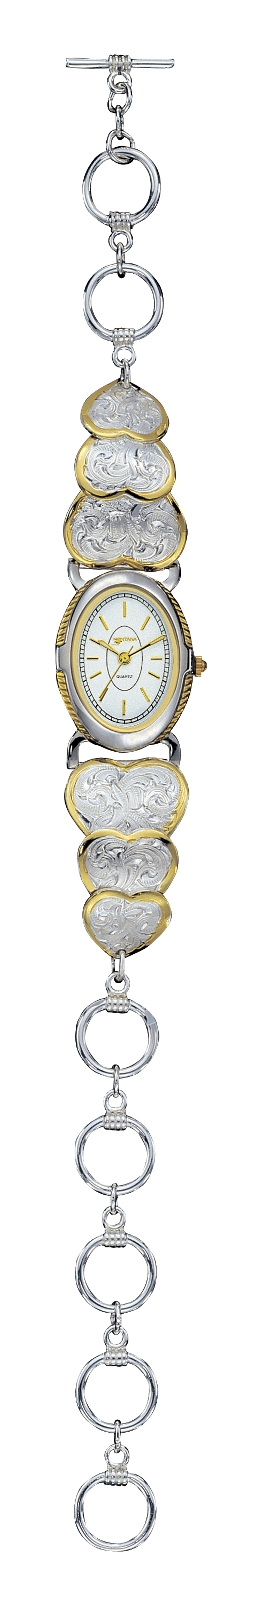 Montana Silversmiths Ladies Open Link Watch with Silver and Gold Engraved Hearts